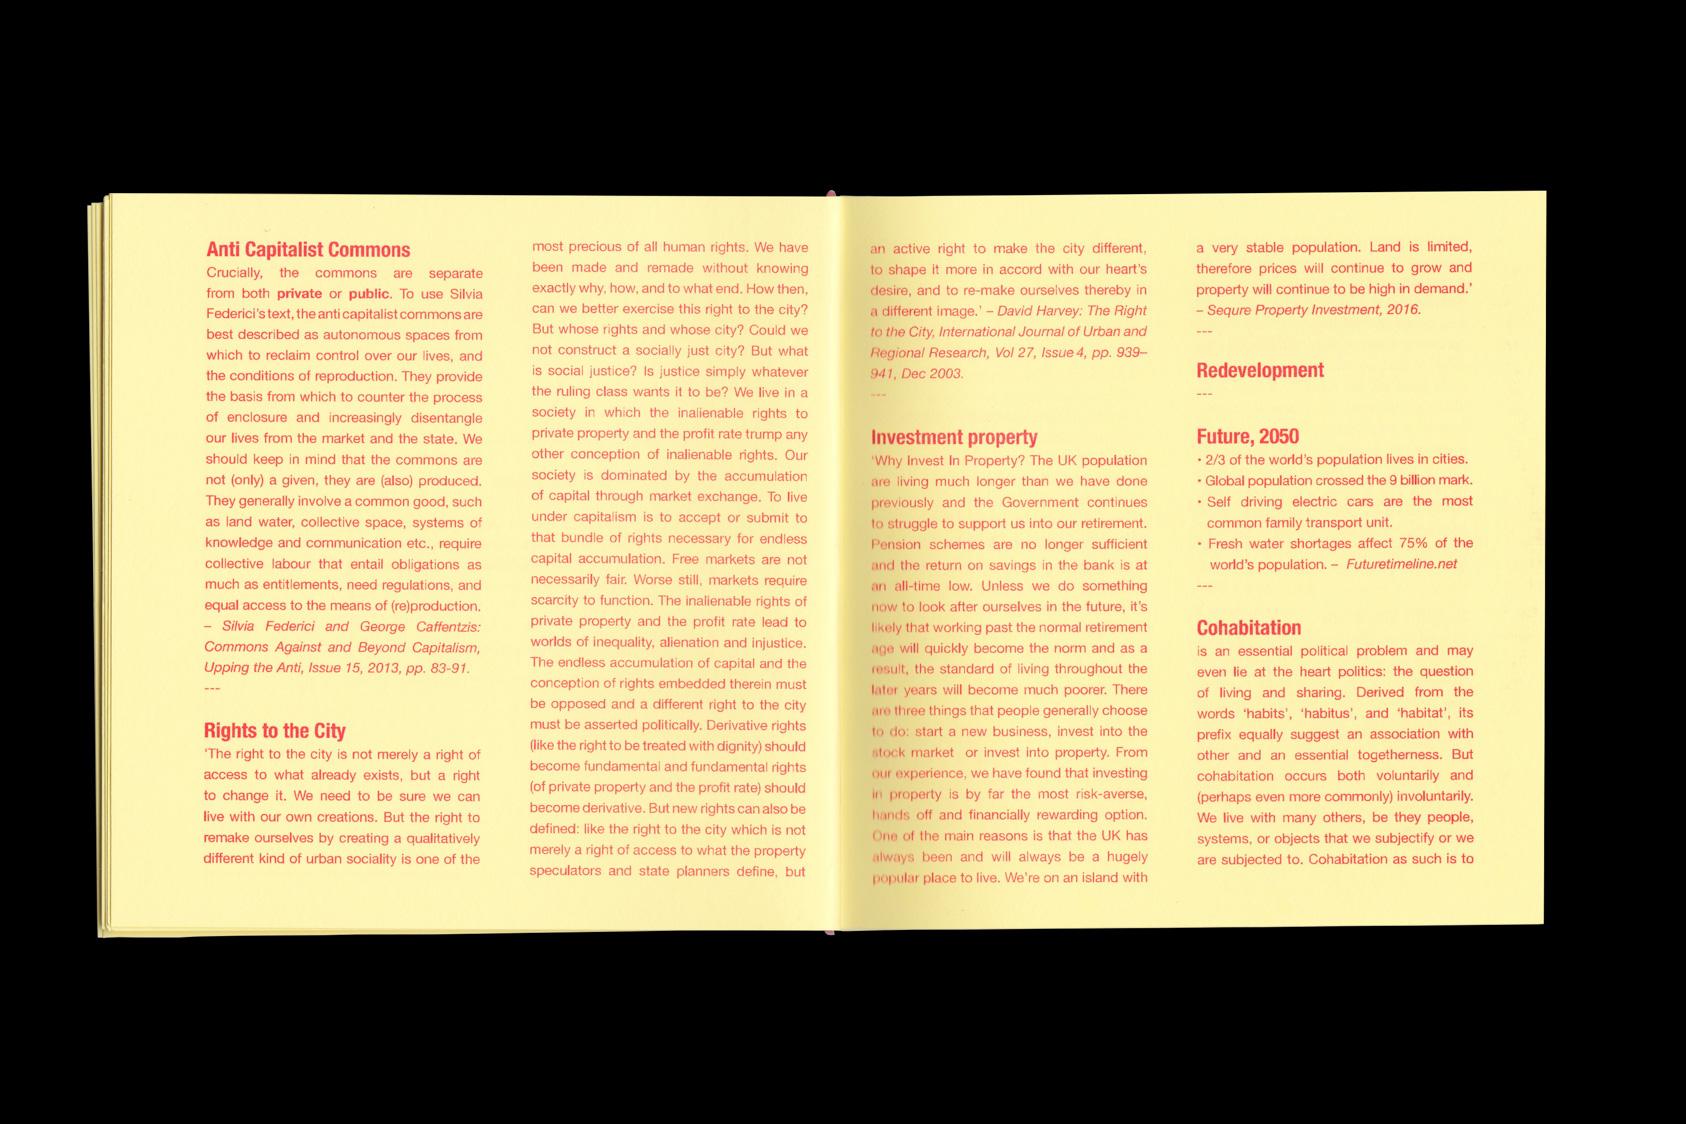 Spatial Practices and the Urban Commons - publication accompanying exhibition for Tenderpixel, 2016 by the agency for emerging ideas